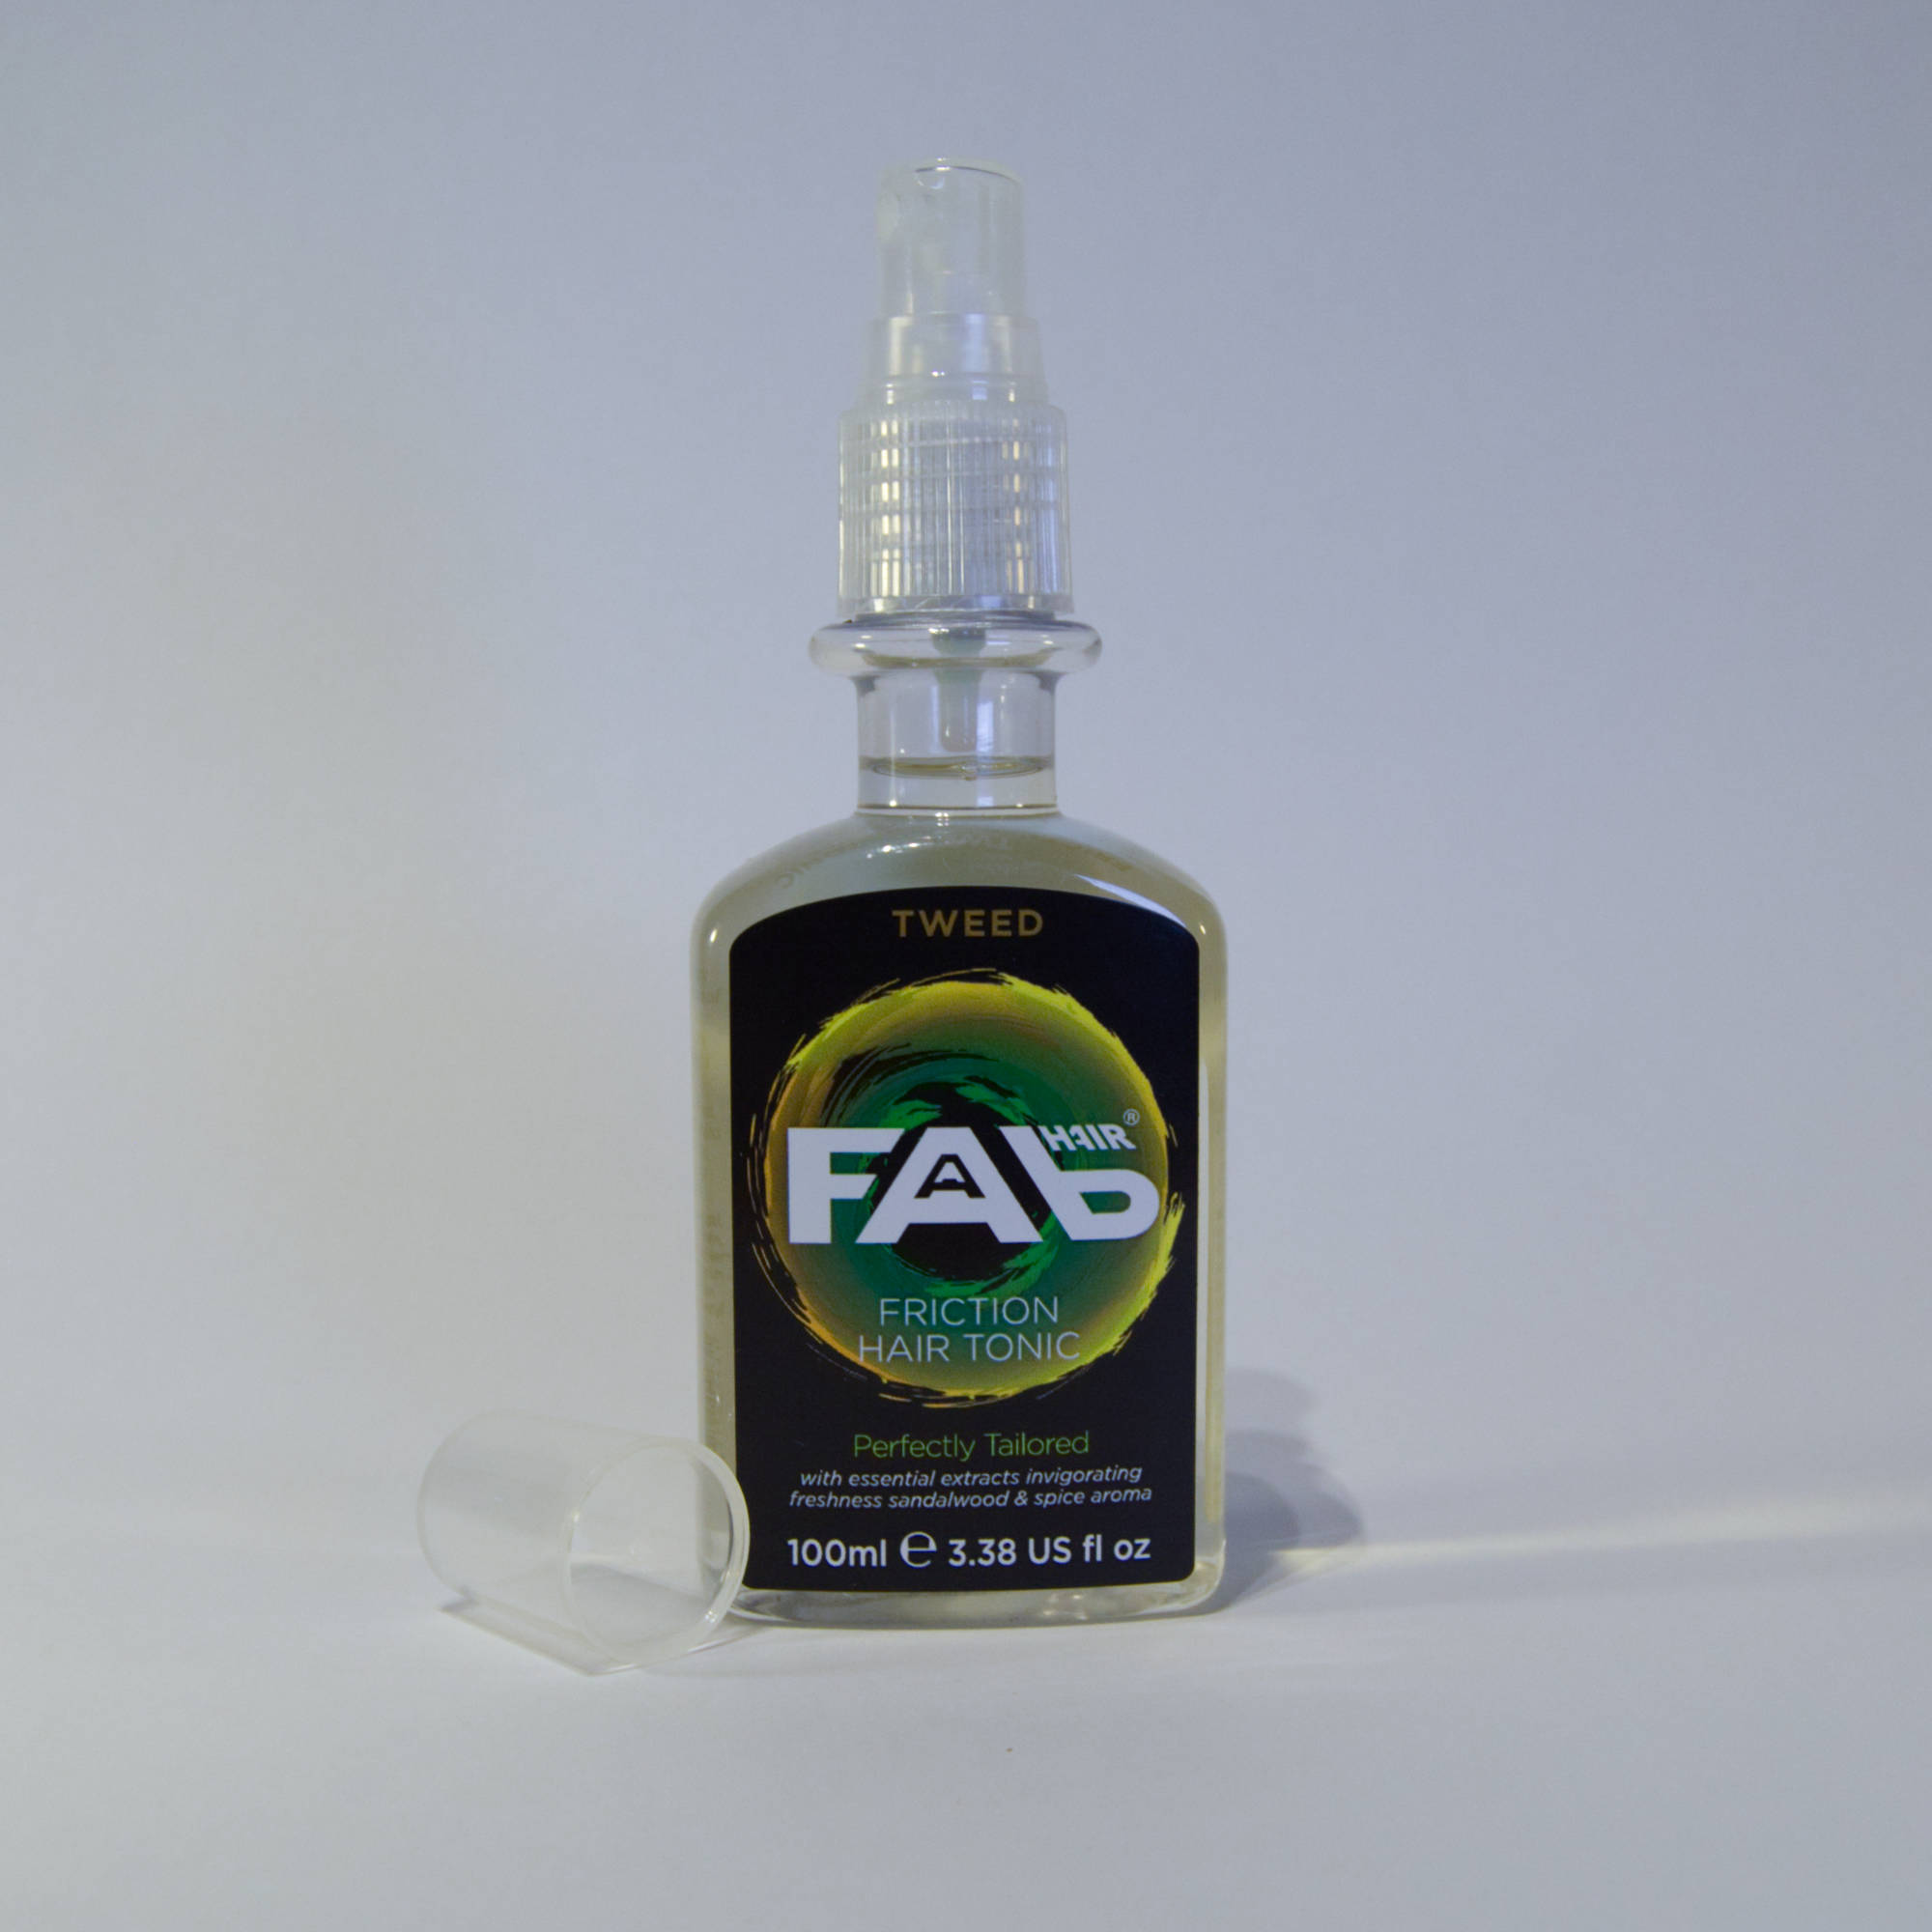 100ml bottle of Tweed flavoured FAB friction hair tonic with Spray Nozzle